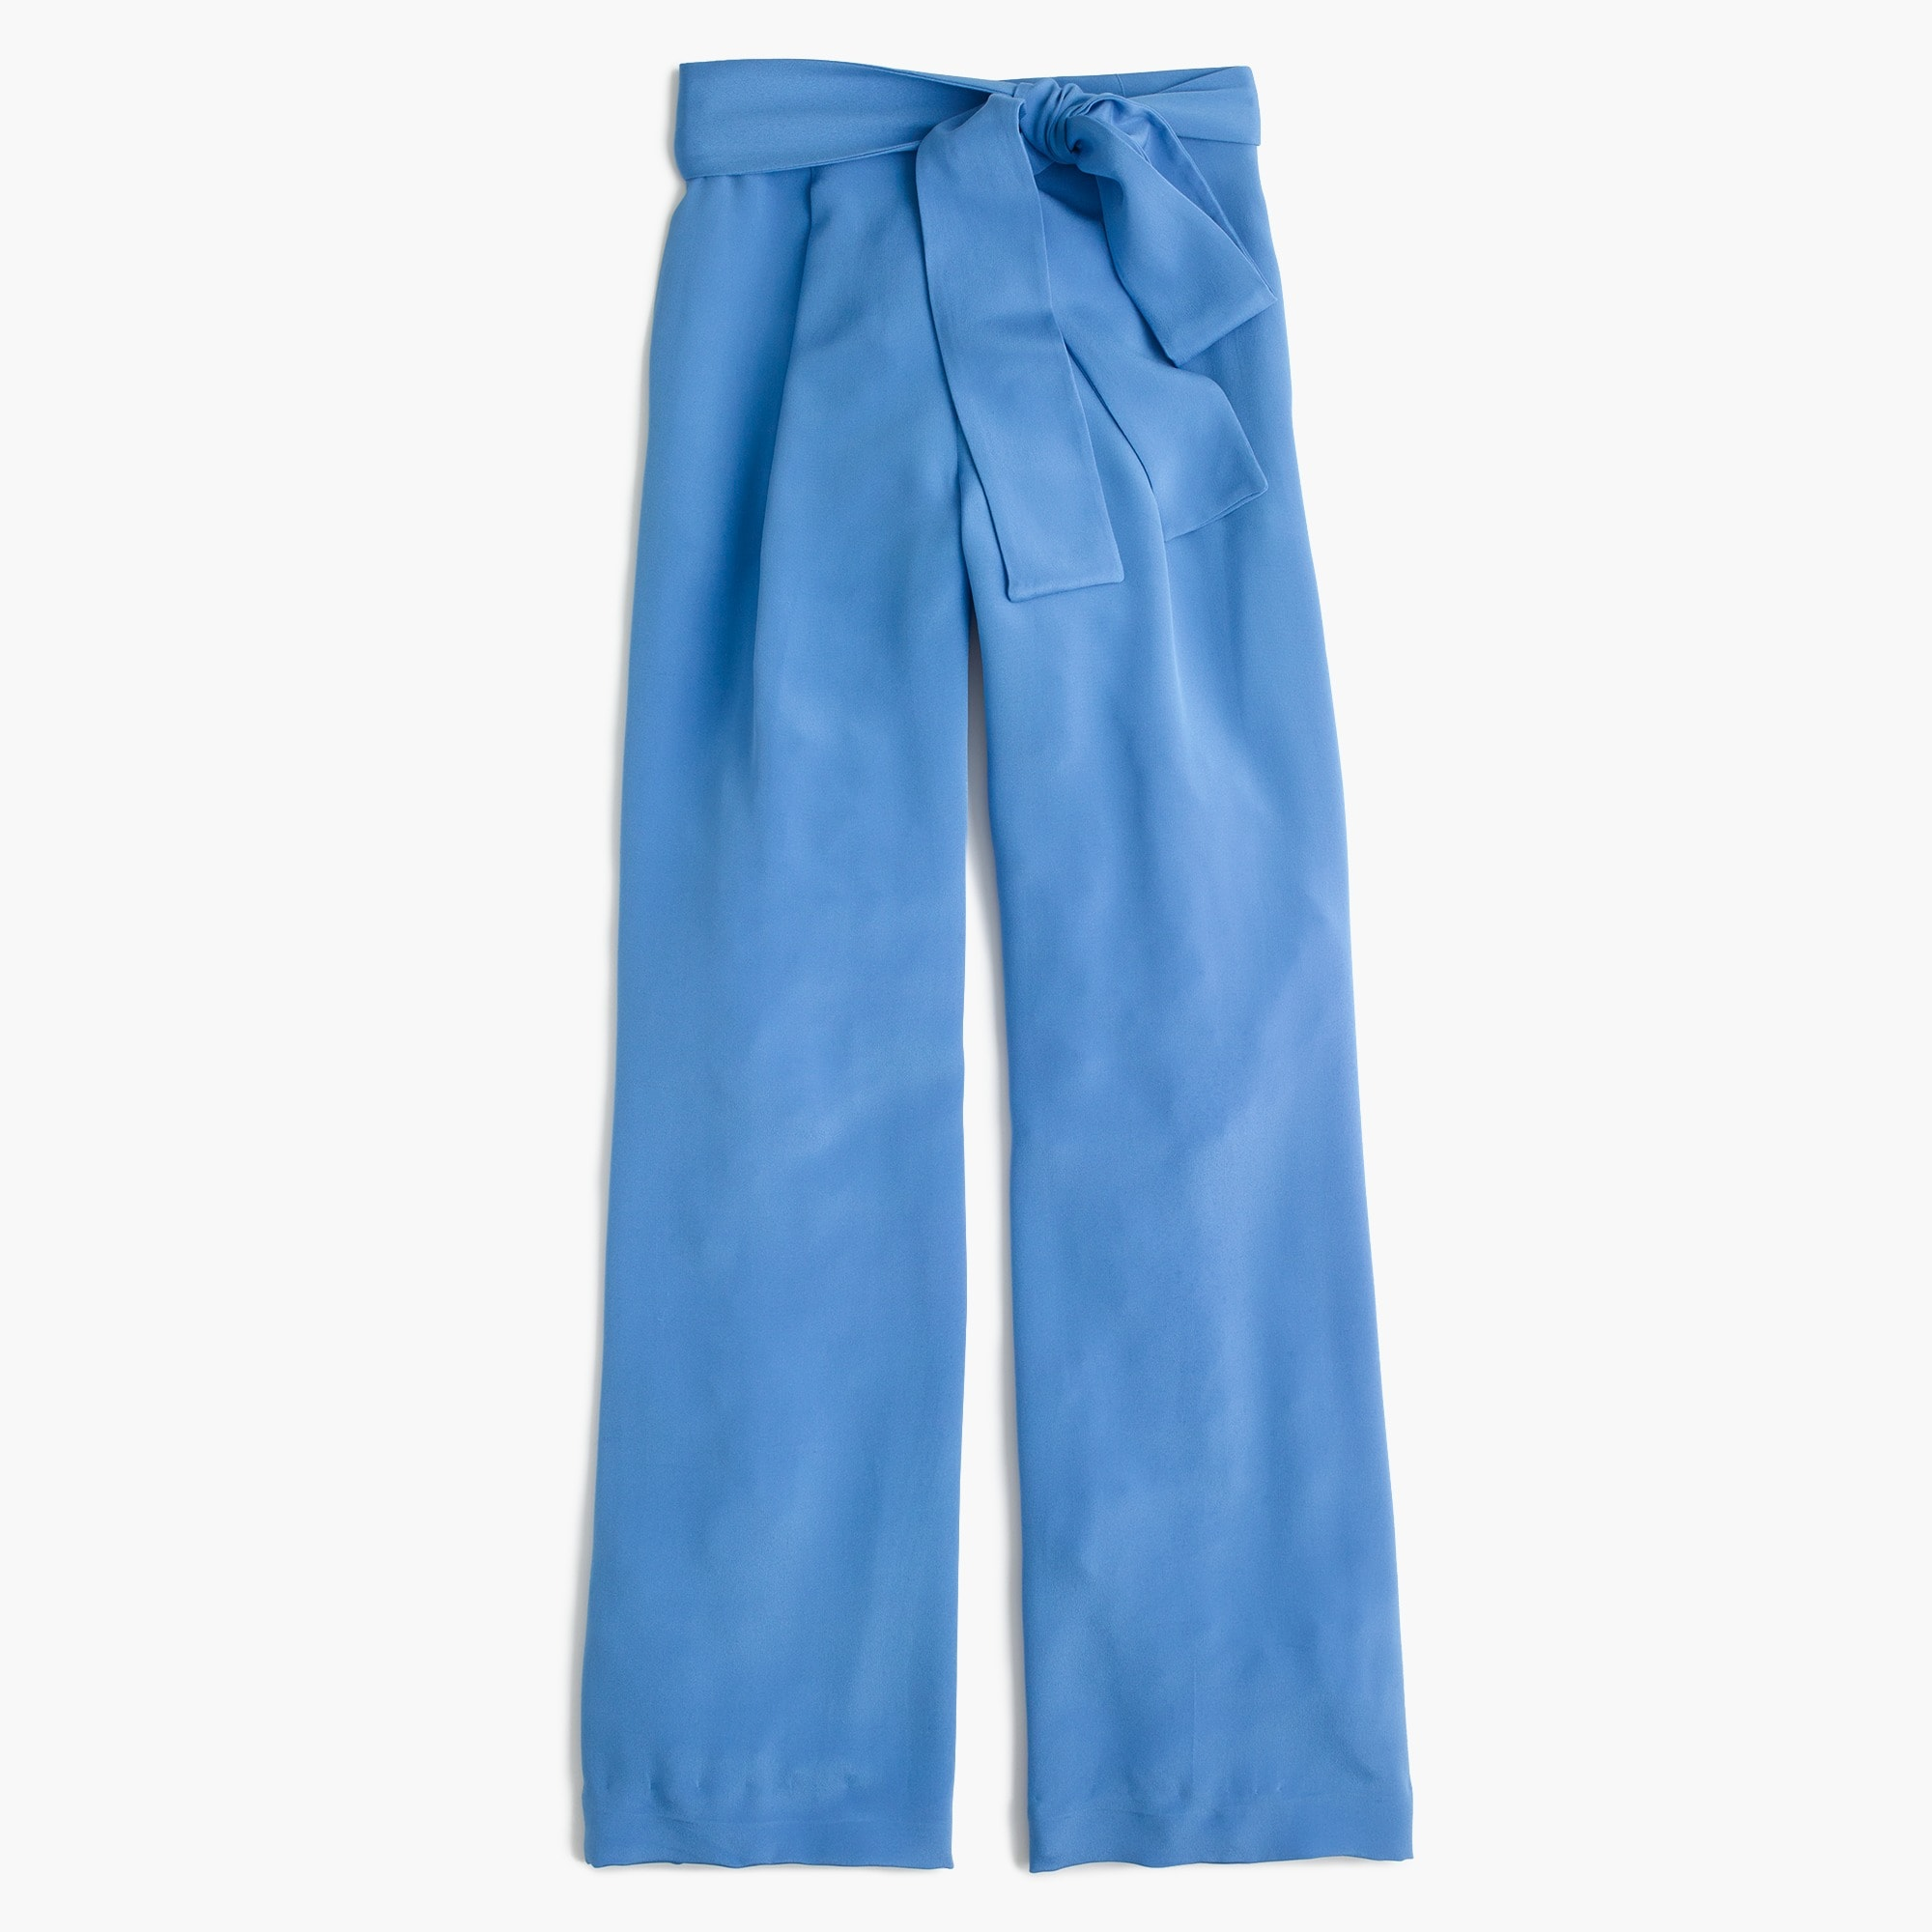 Image 2 for Collection tie-waist pant